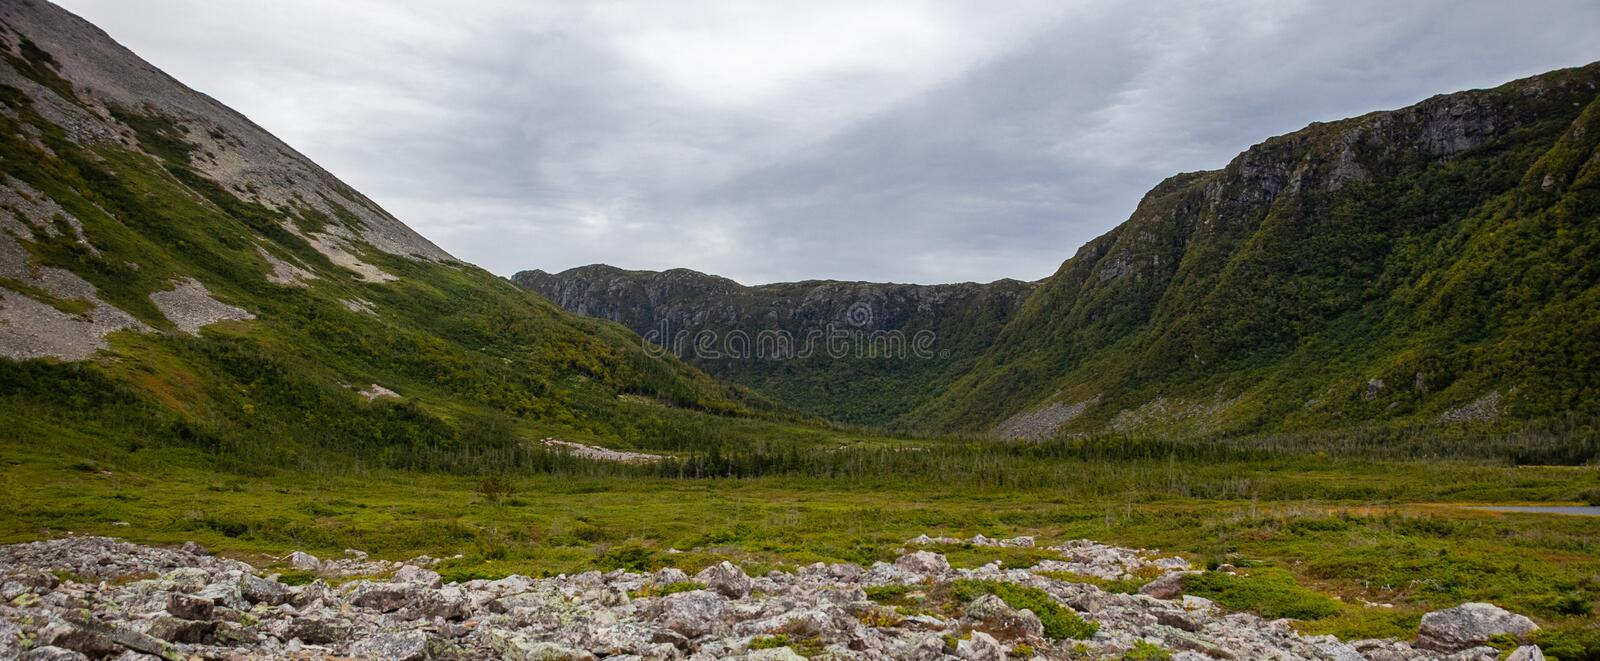 Gros Morne Mountain Valley. Gros Morne Mountain Trail in Gros Morne National Park in Newfoundland, Canada Late fall on a stormy windy day. Mountains and valleys stock image